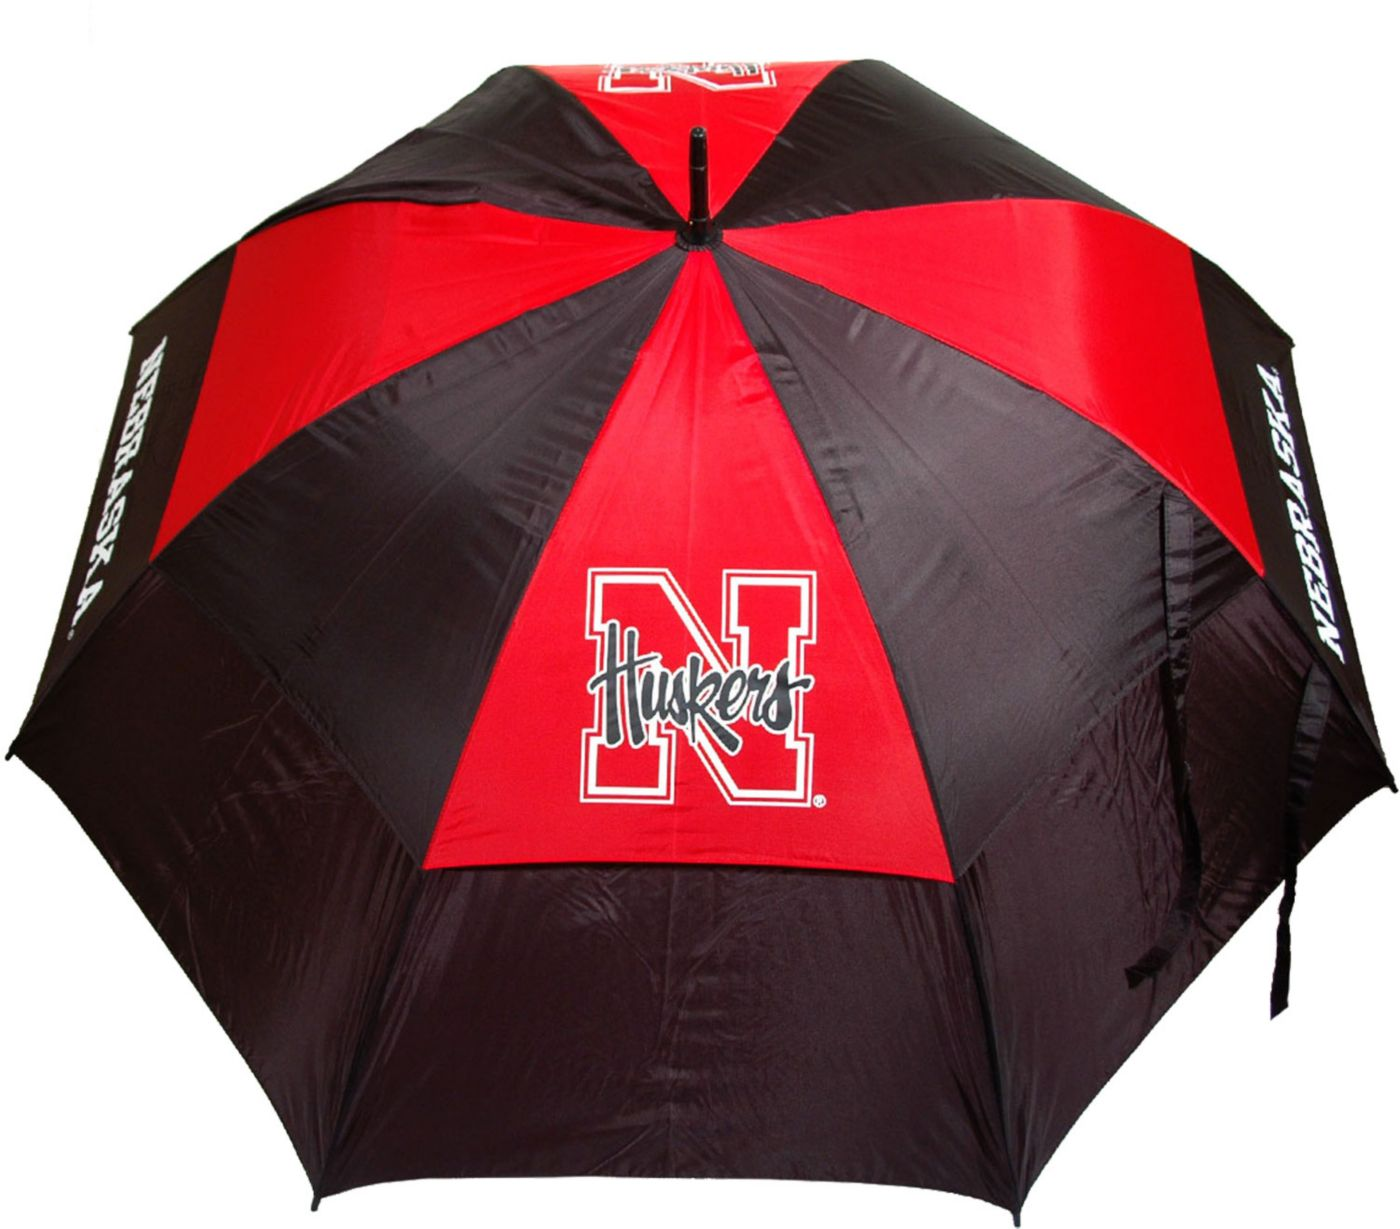 Team Golf Nebraska Cornhuskers Golf Umbrella